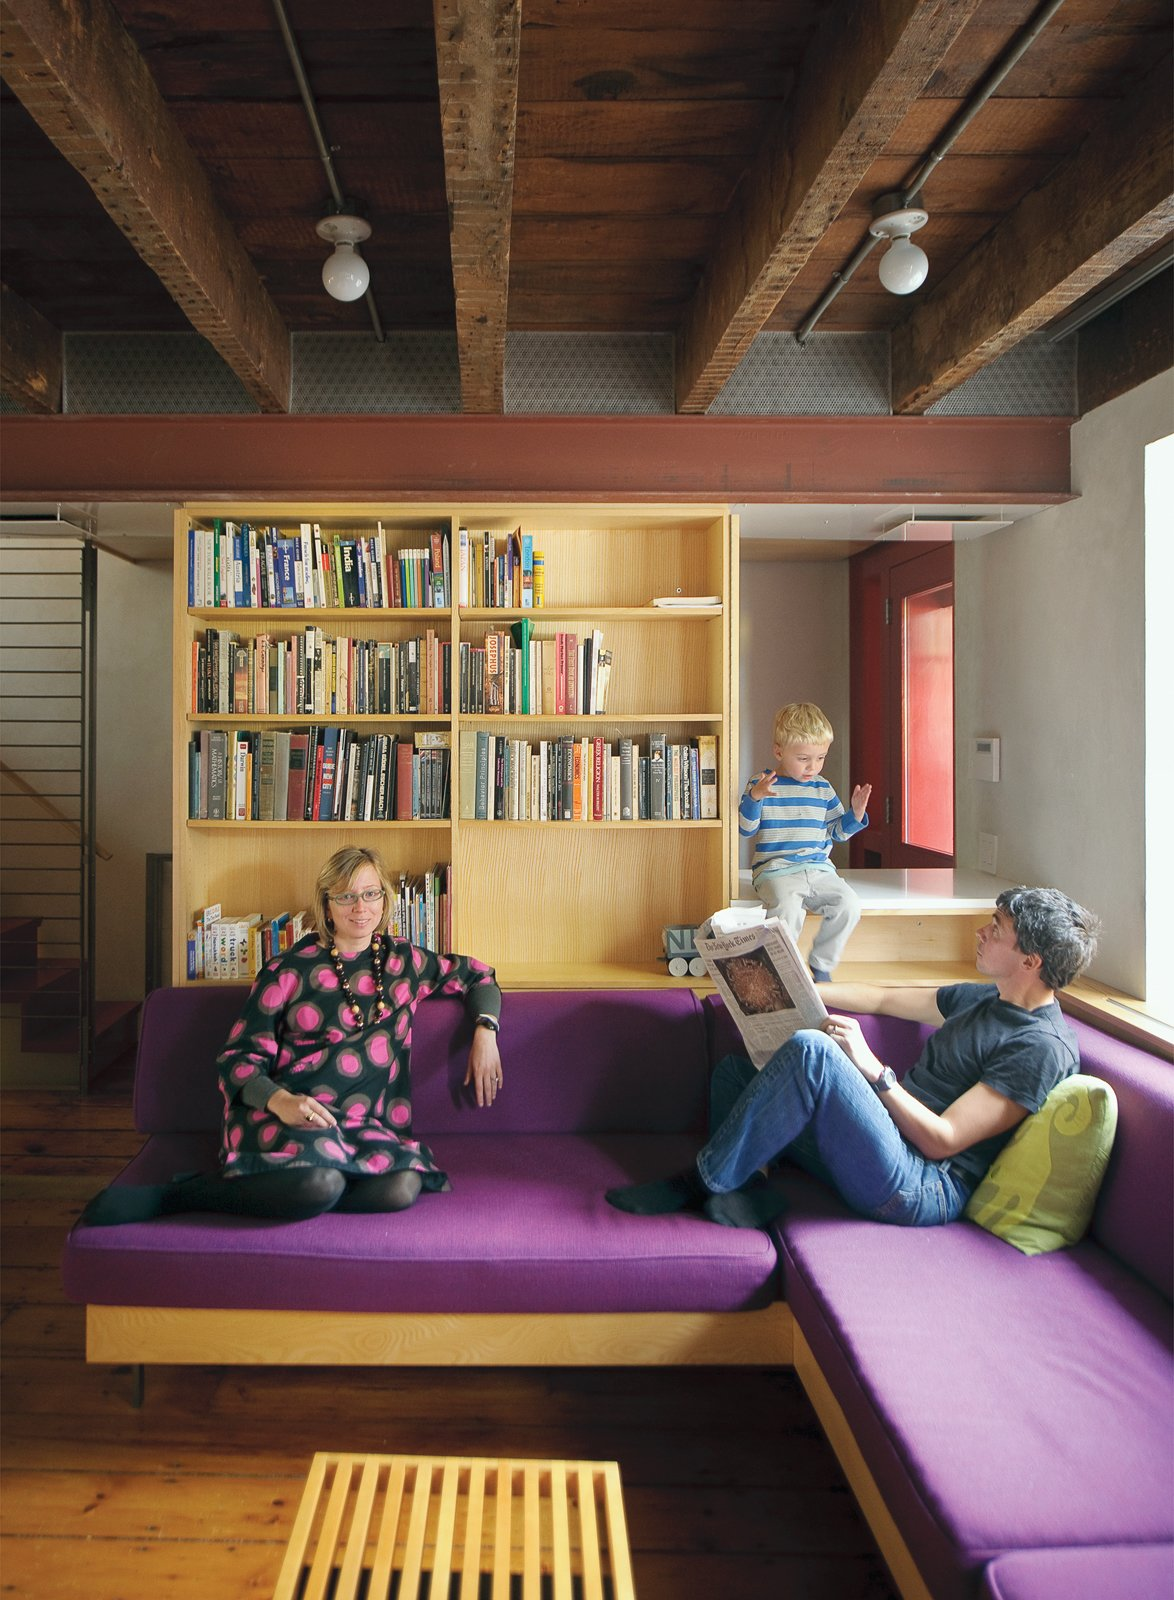 Living Room, Bookcase, Medium Hardwood Floor, and Sectional The exposed ceiling beams and inserted steel framing system are visible in the lower level, where Lange and Dixon relax with their son Paul.  Photos from Family Home Renovation in Brooklyn